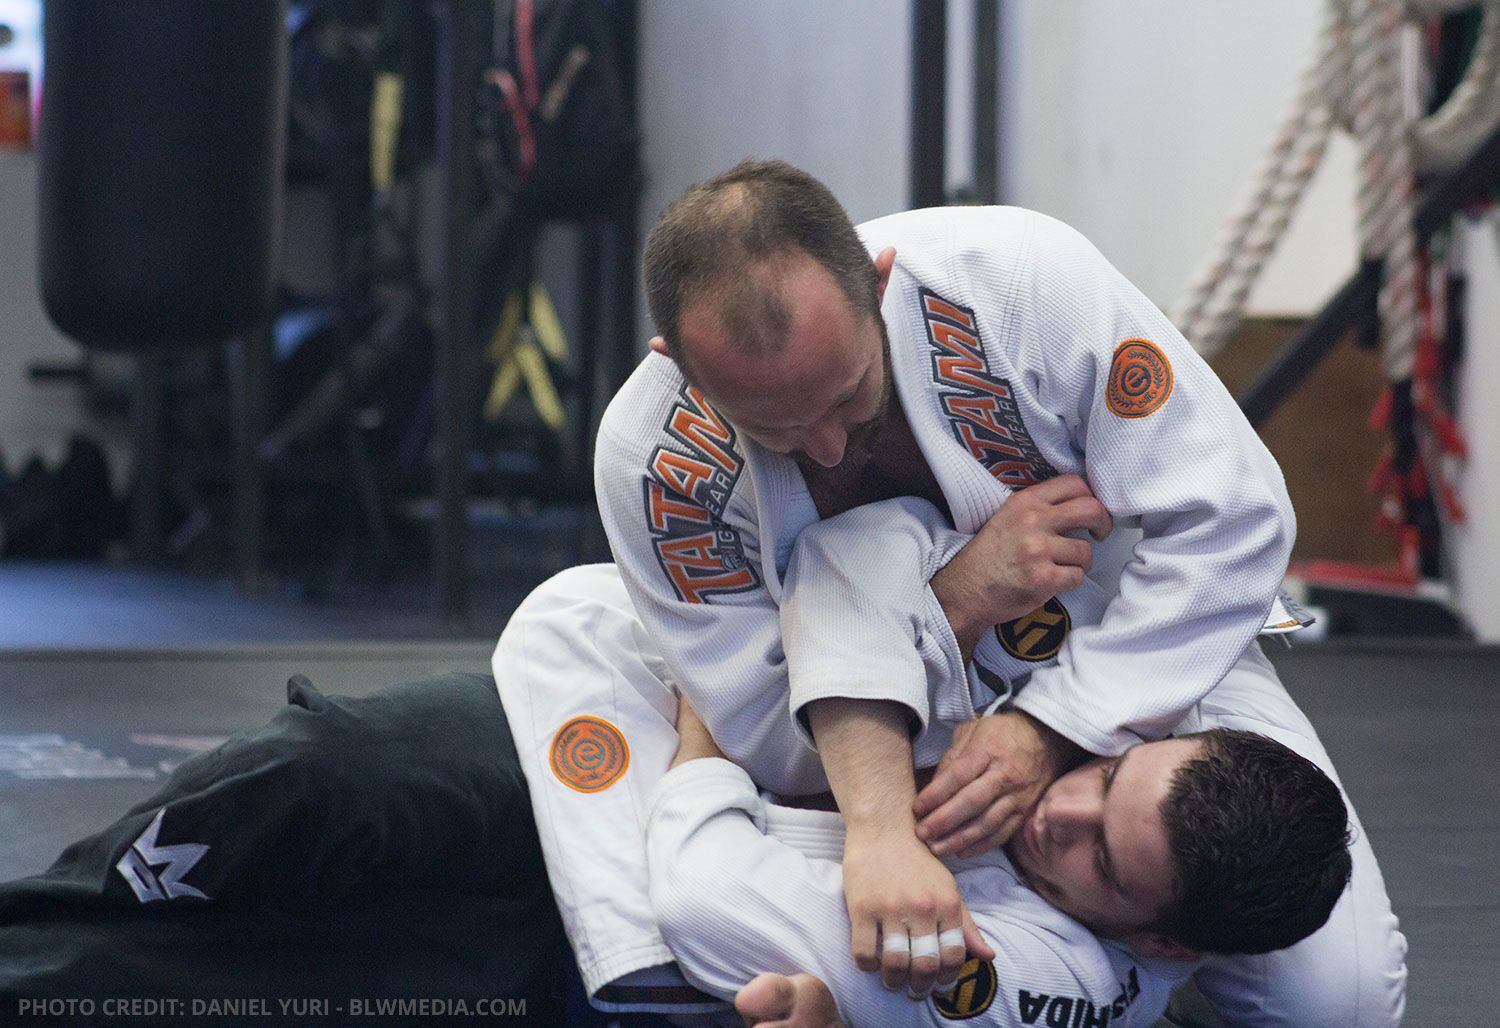 Sports Psychology: What Does Sticking With jiu-jitsu Say About You